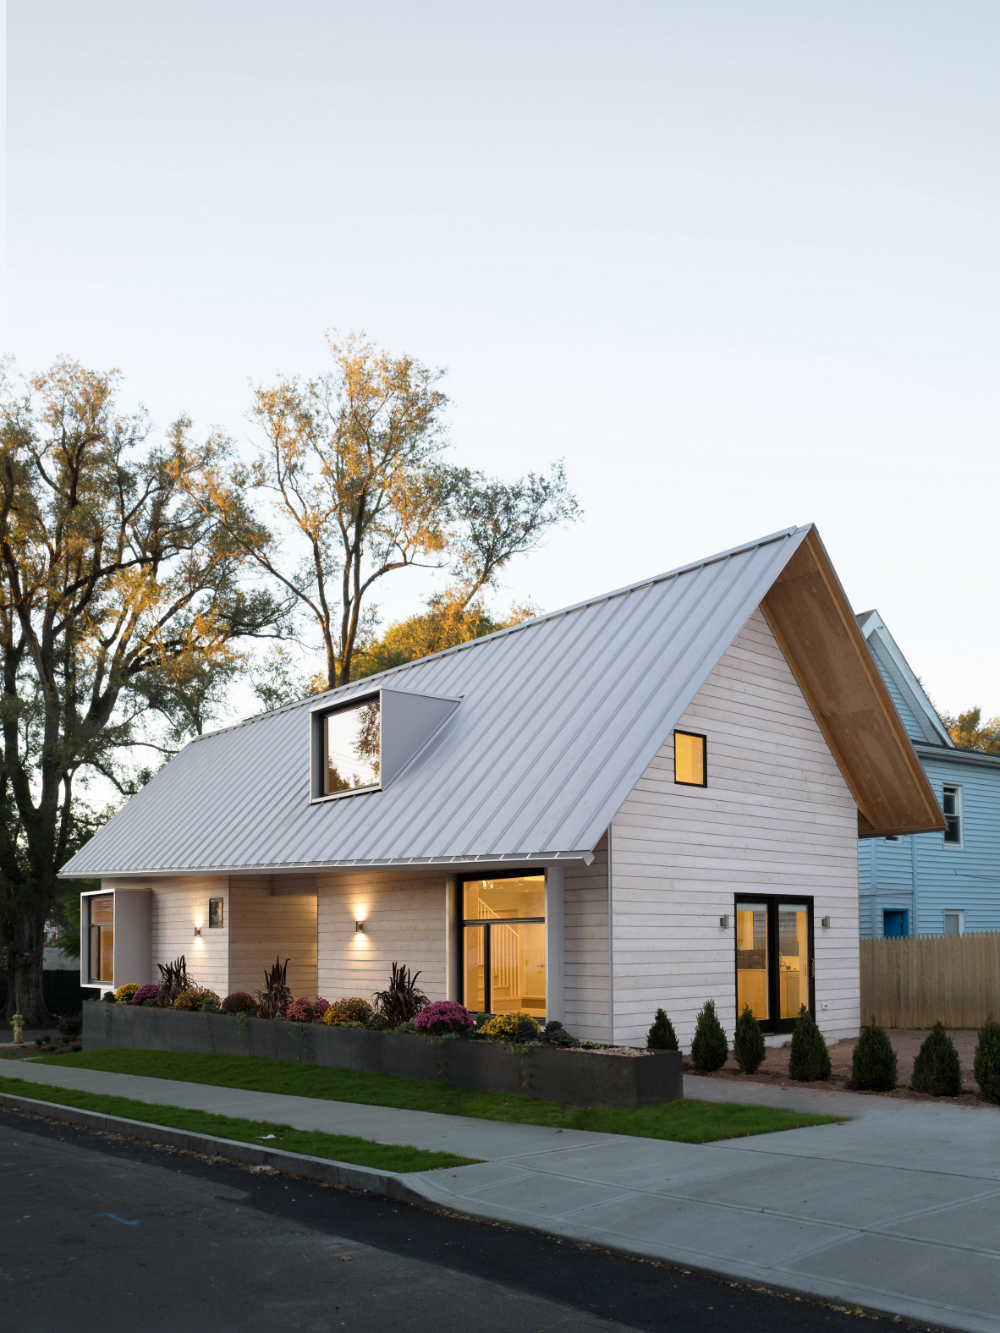 Yale Architecture Students Create Dwelling In Connecticut For The Homeless In 2020 Architecture Gable Roof Design Architecture Design